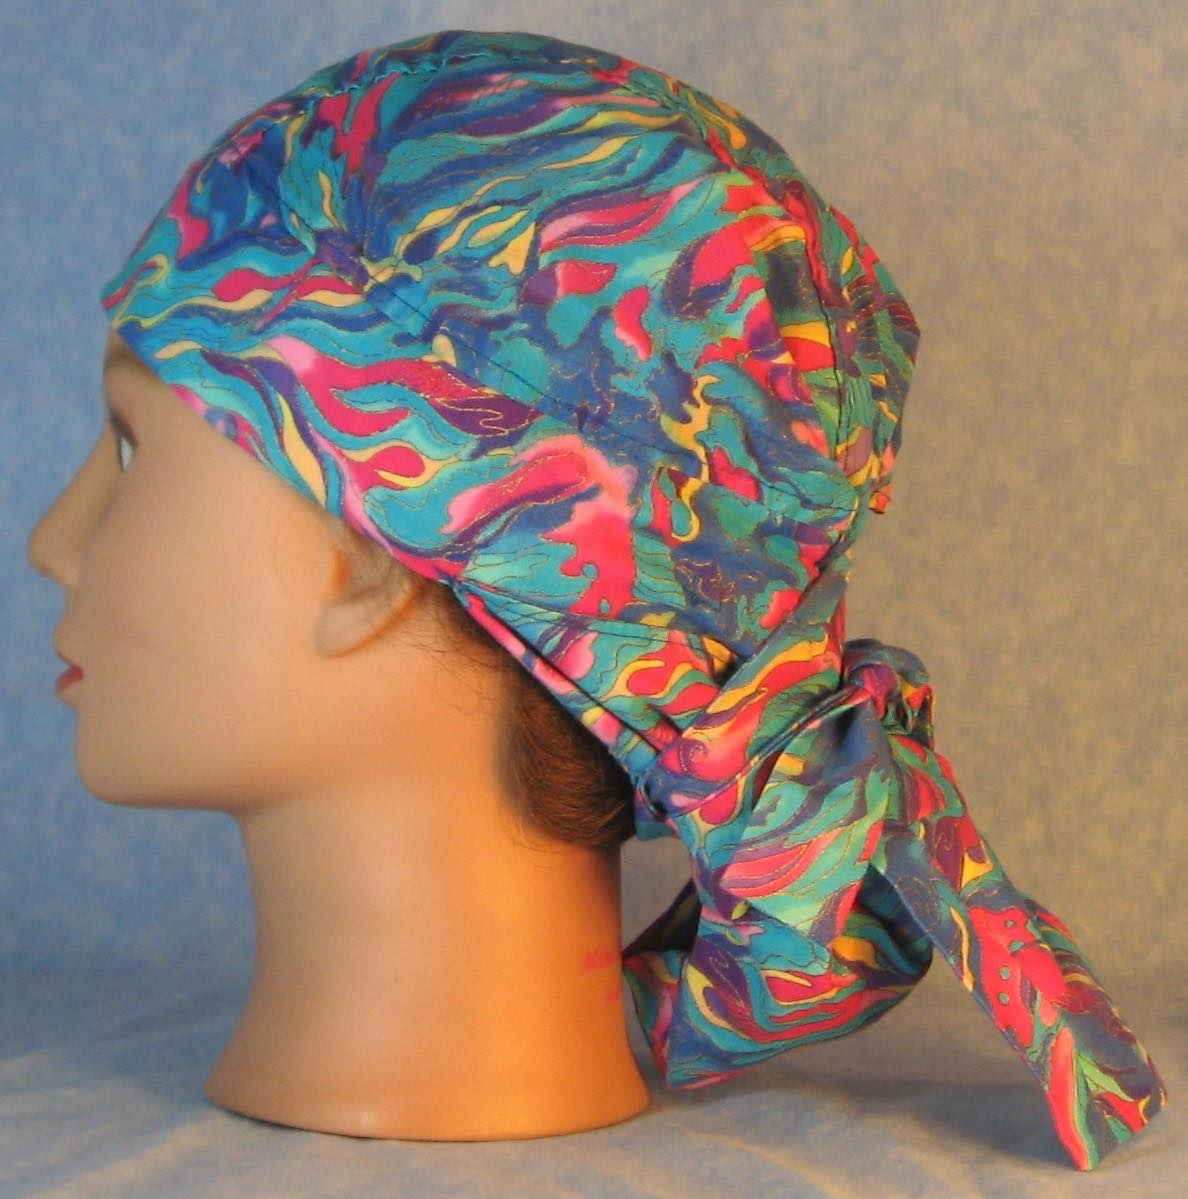 Hair Stocking Do Rag in Blue Turquoise Pink Yellow Flame Gold Wave - Adult 1XL-3XL